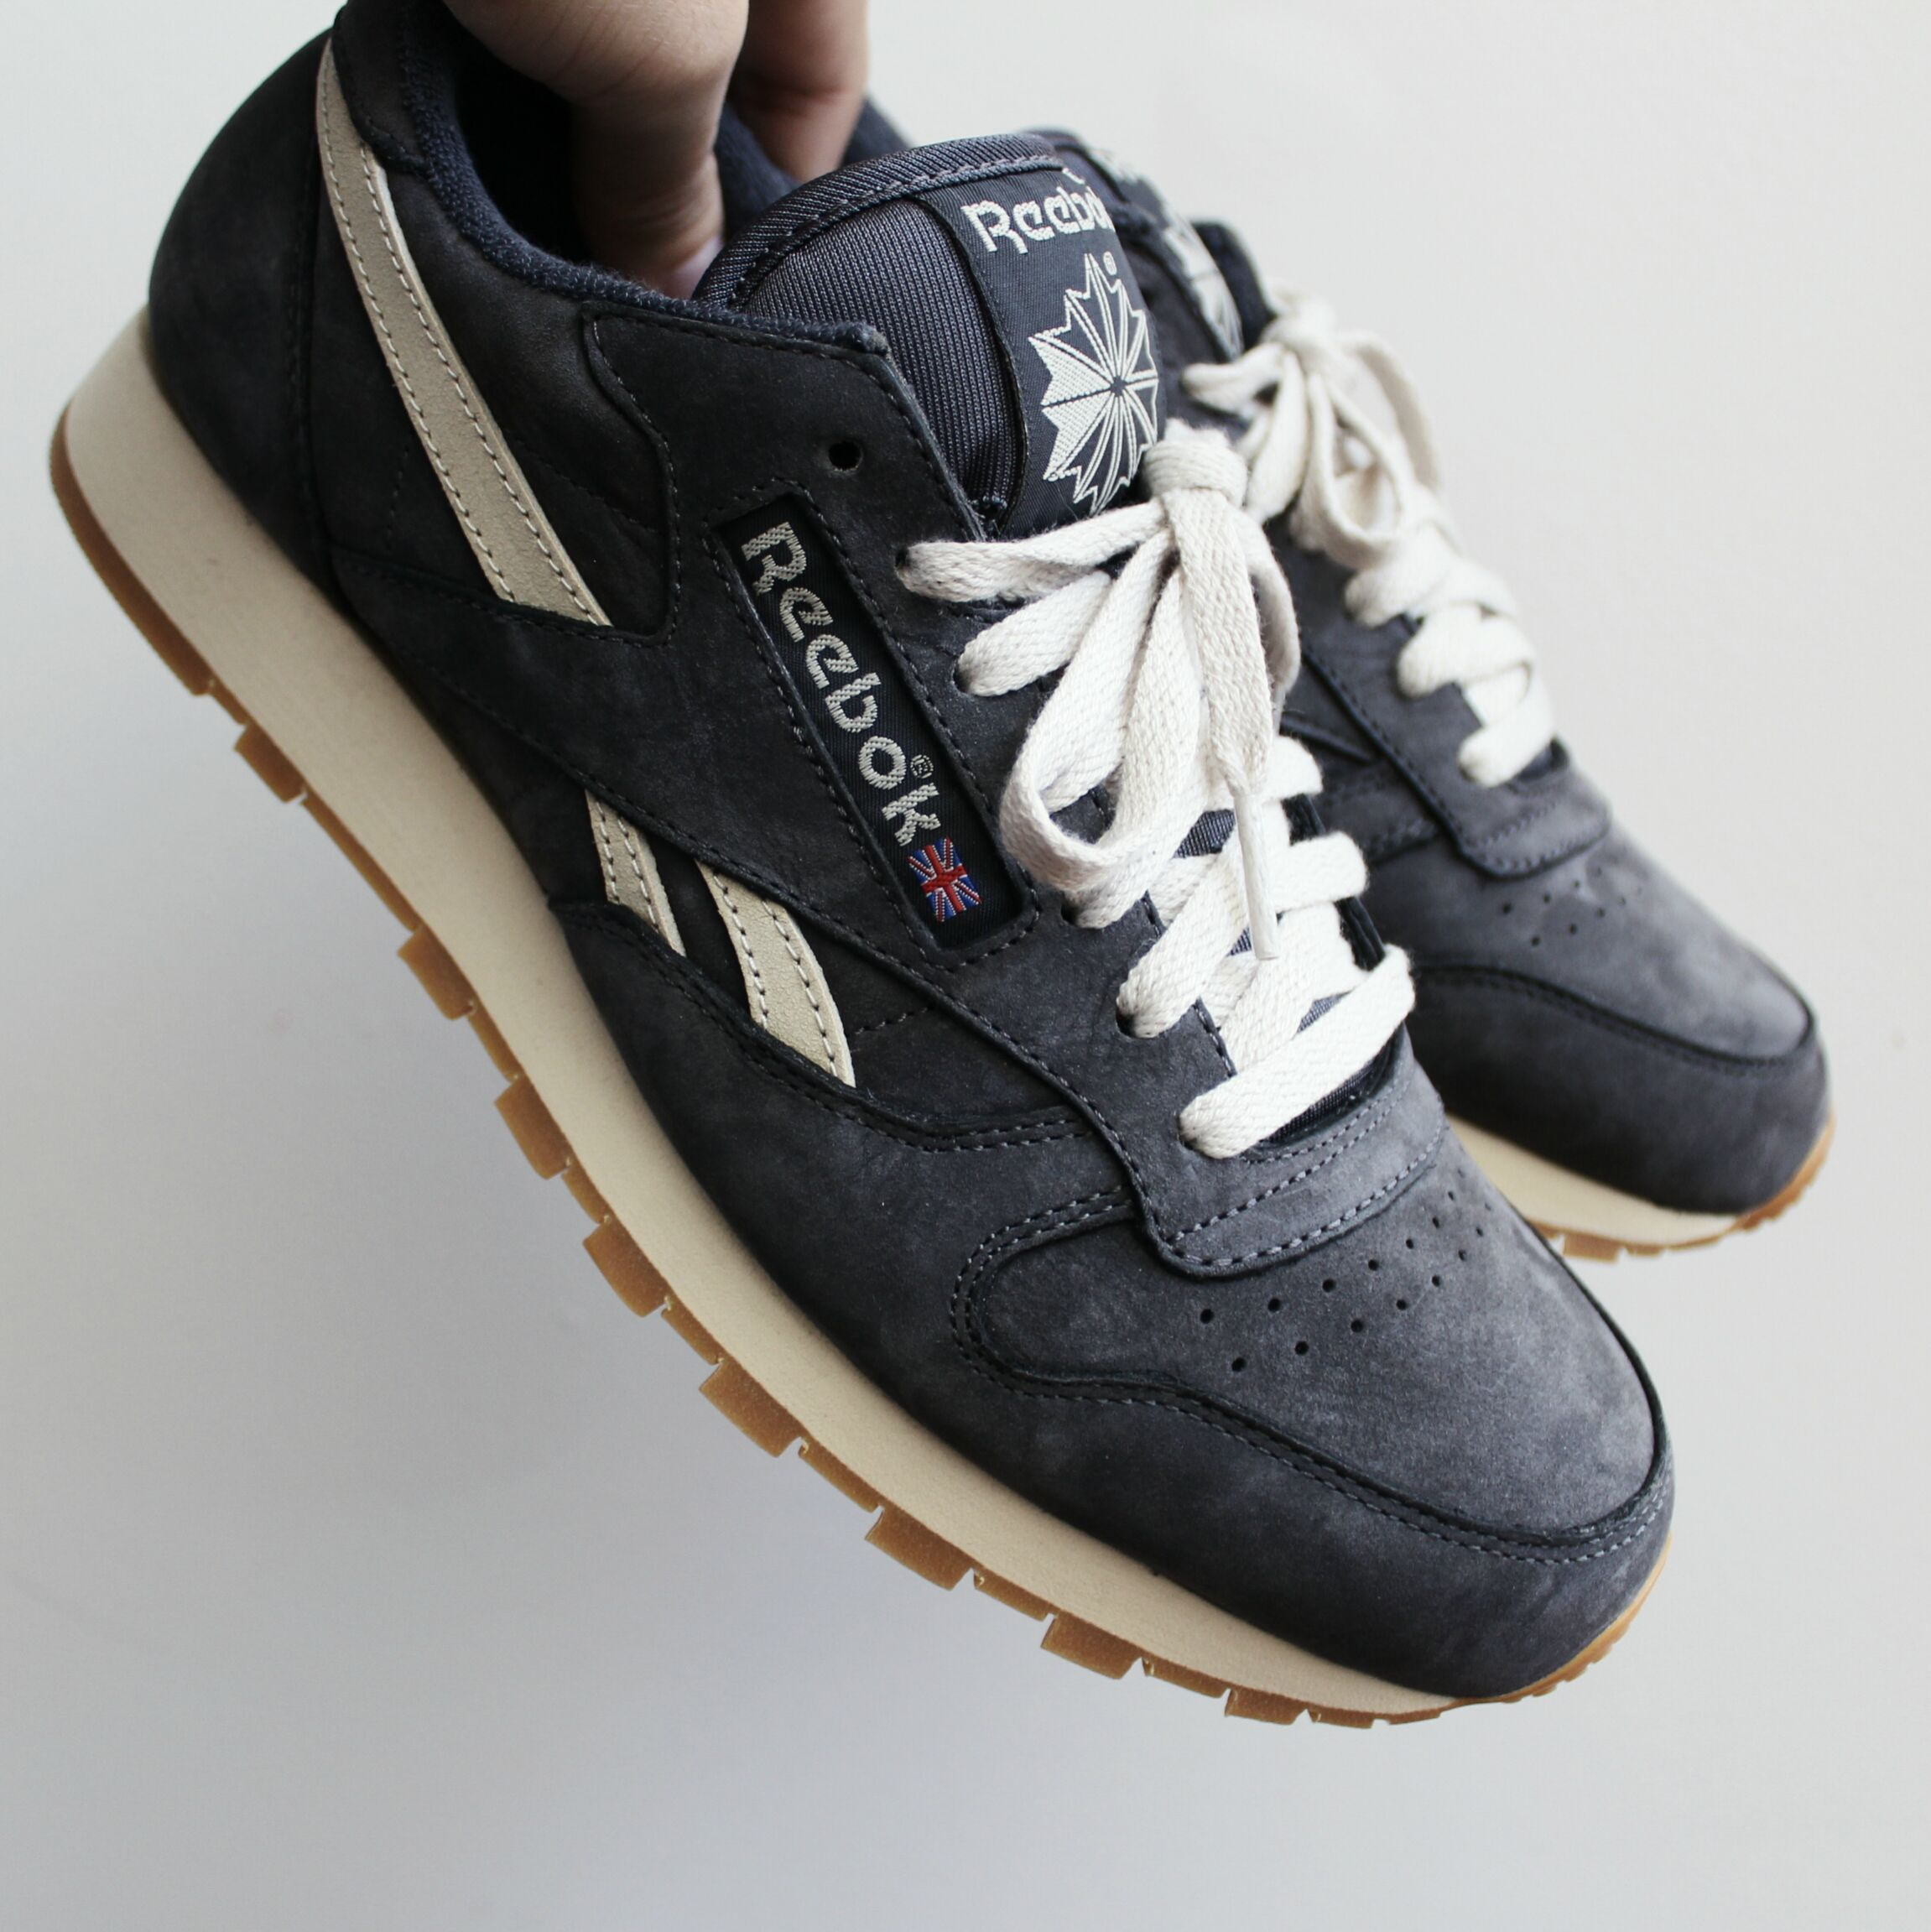 Reebok Classic Leather Vintage Retro Suede J93612 Tags Sneakers Low Top Running Shoes Navy Blue Gray Nike Shoes Outlet Nike Free Shoes Reebok Classic